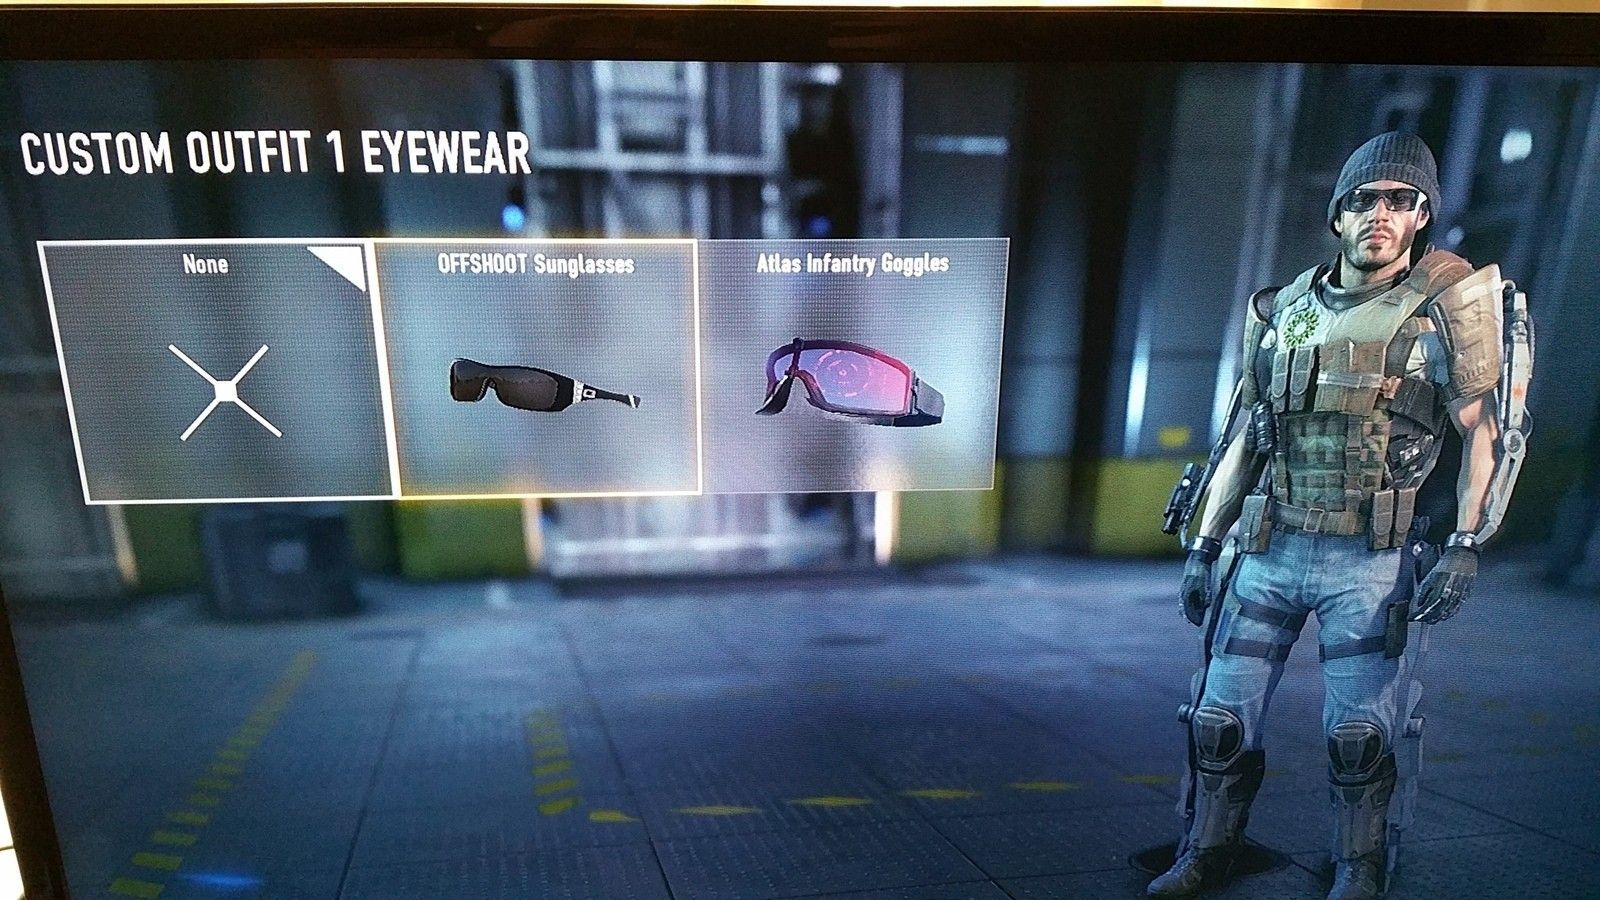 Oakley Made It Into The New Call Of Duty A Game - uploadfromtaptalk1415211254117.jpg